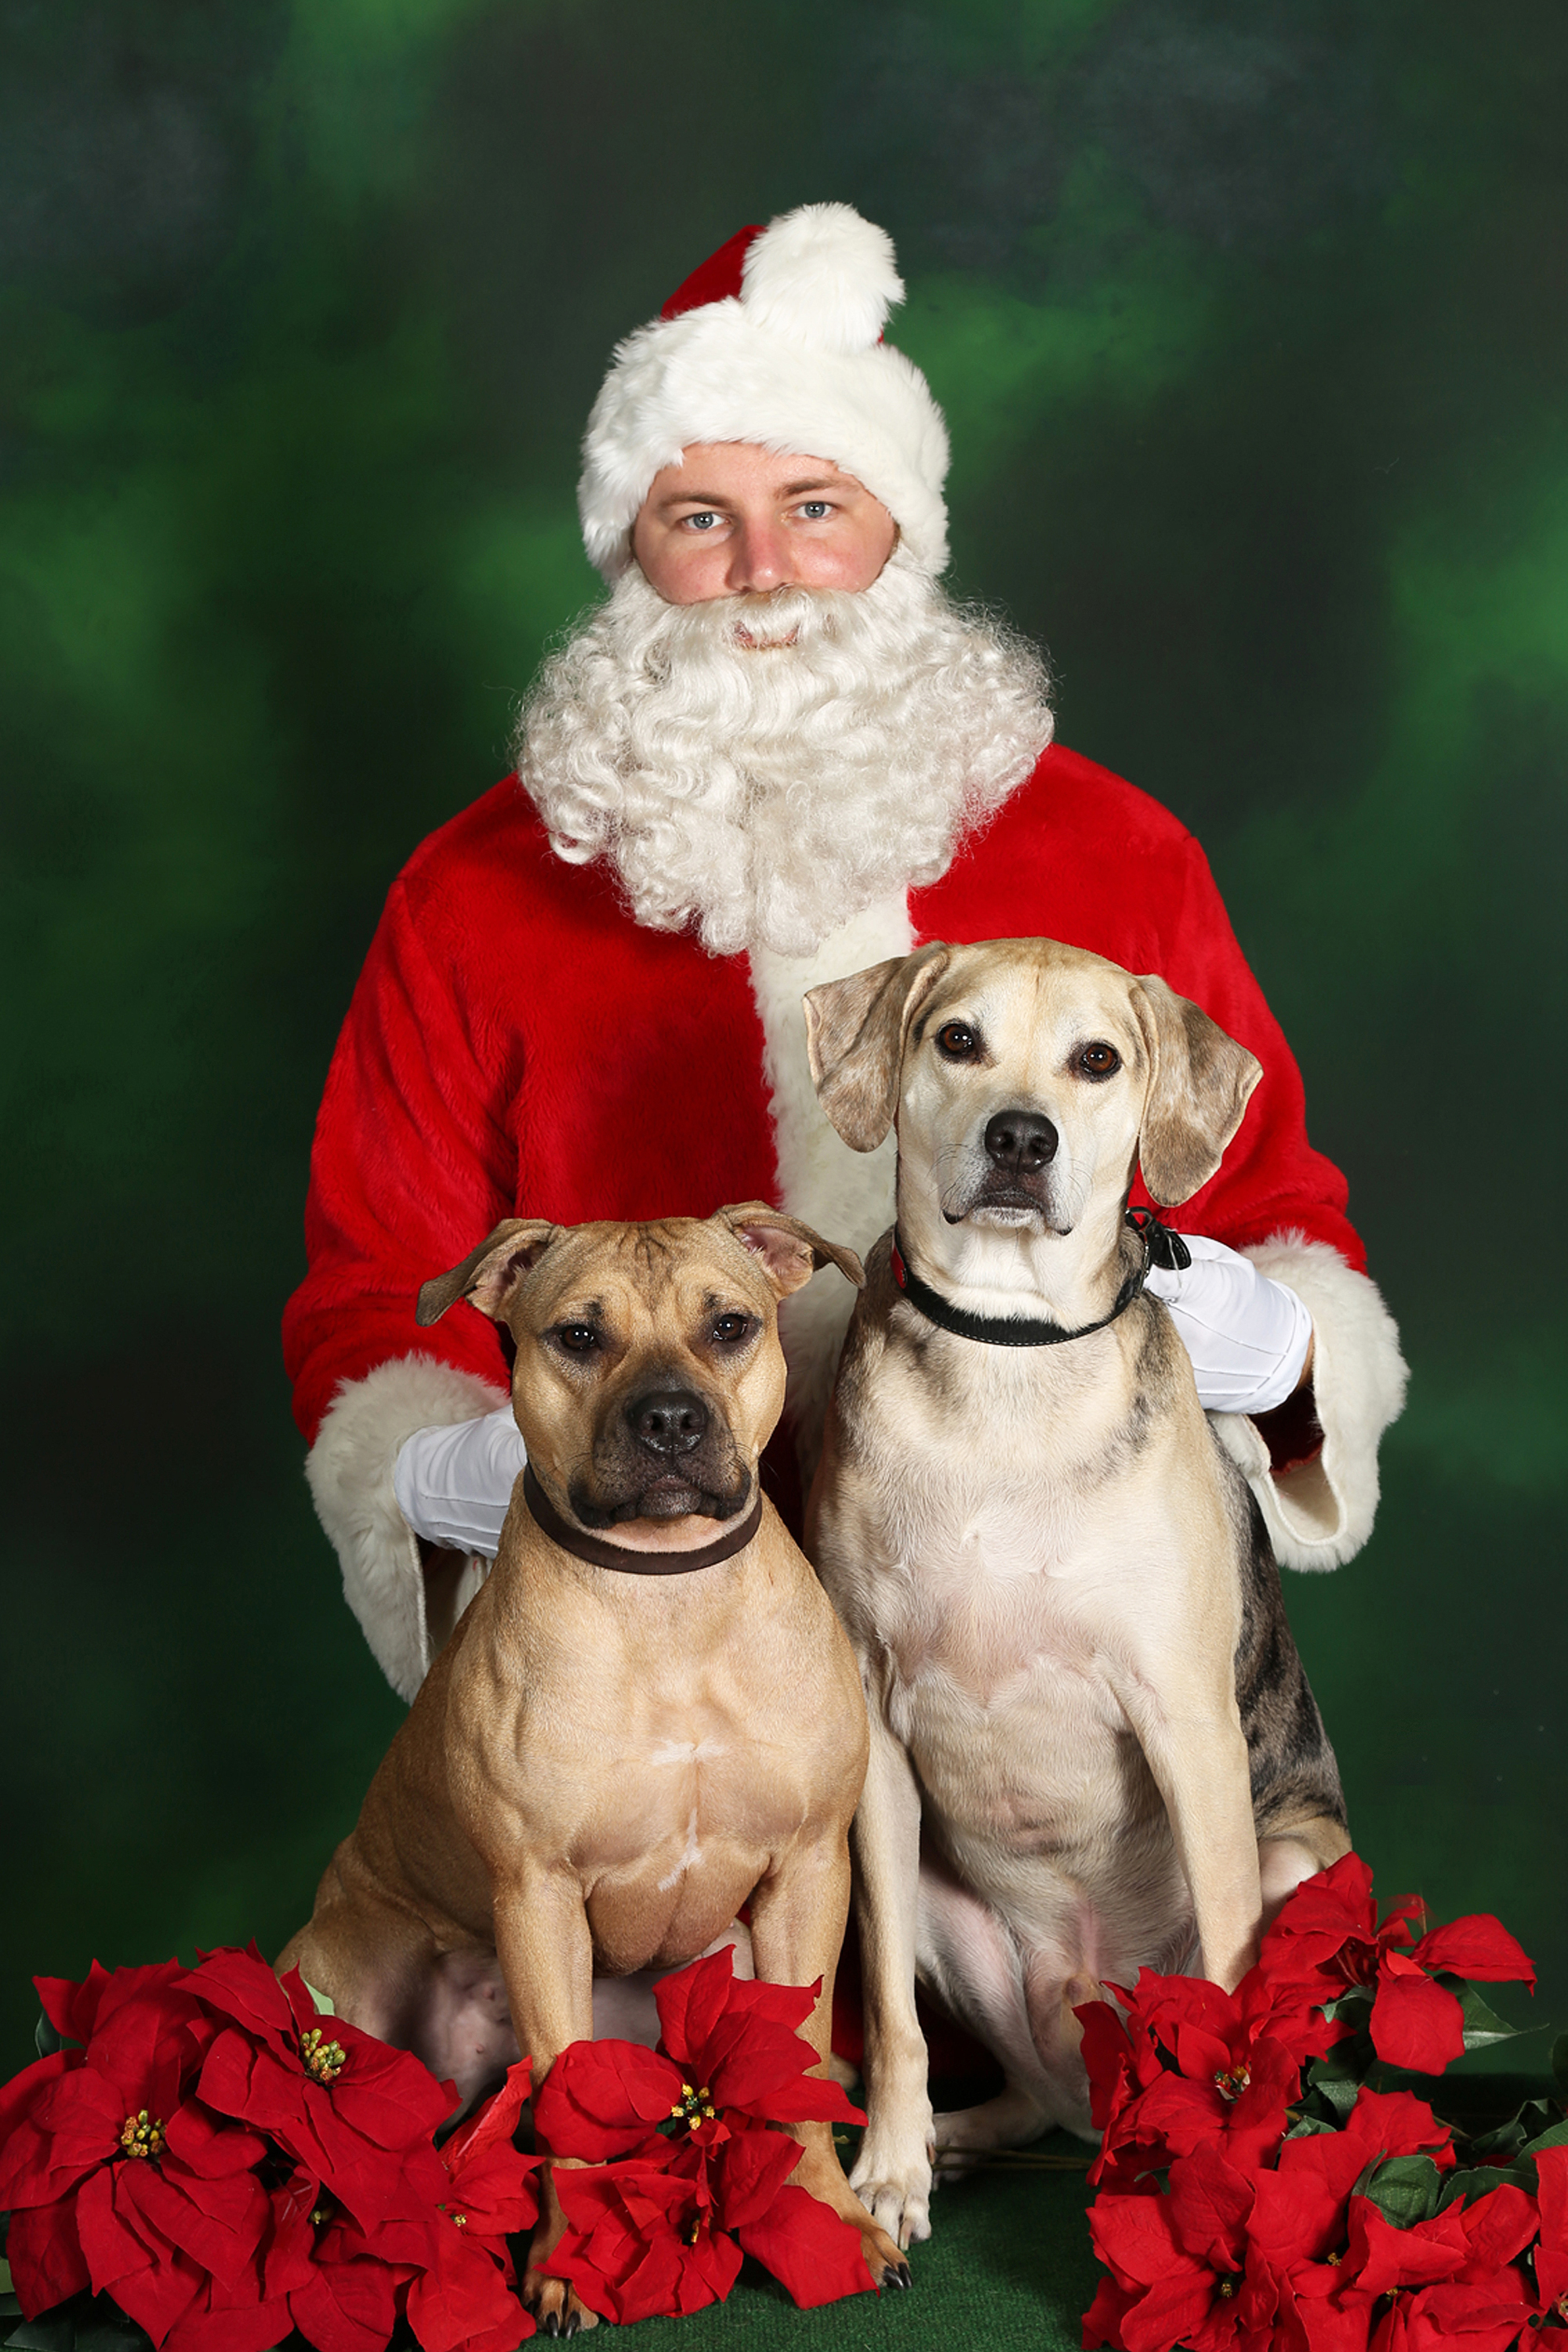 Athena and Zeus visit Santa Claus 2016